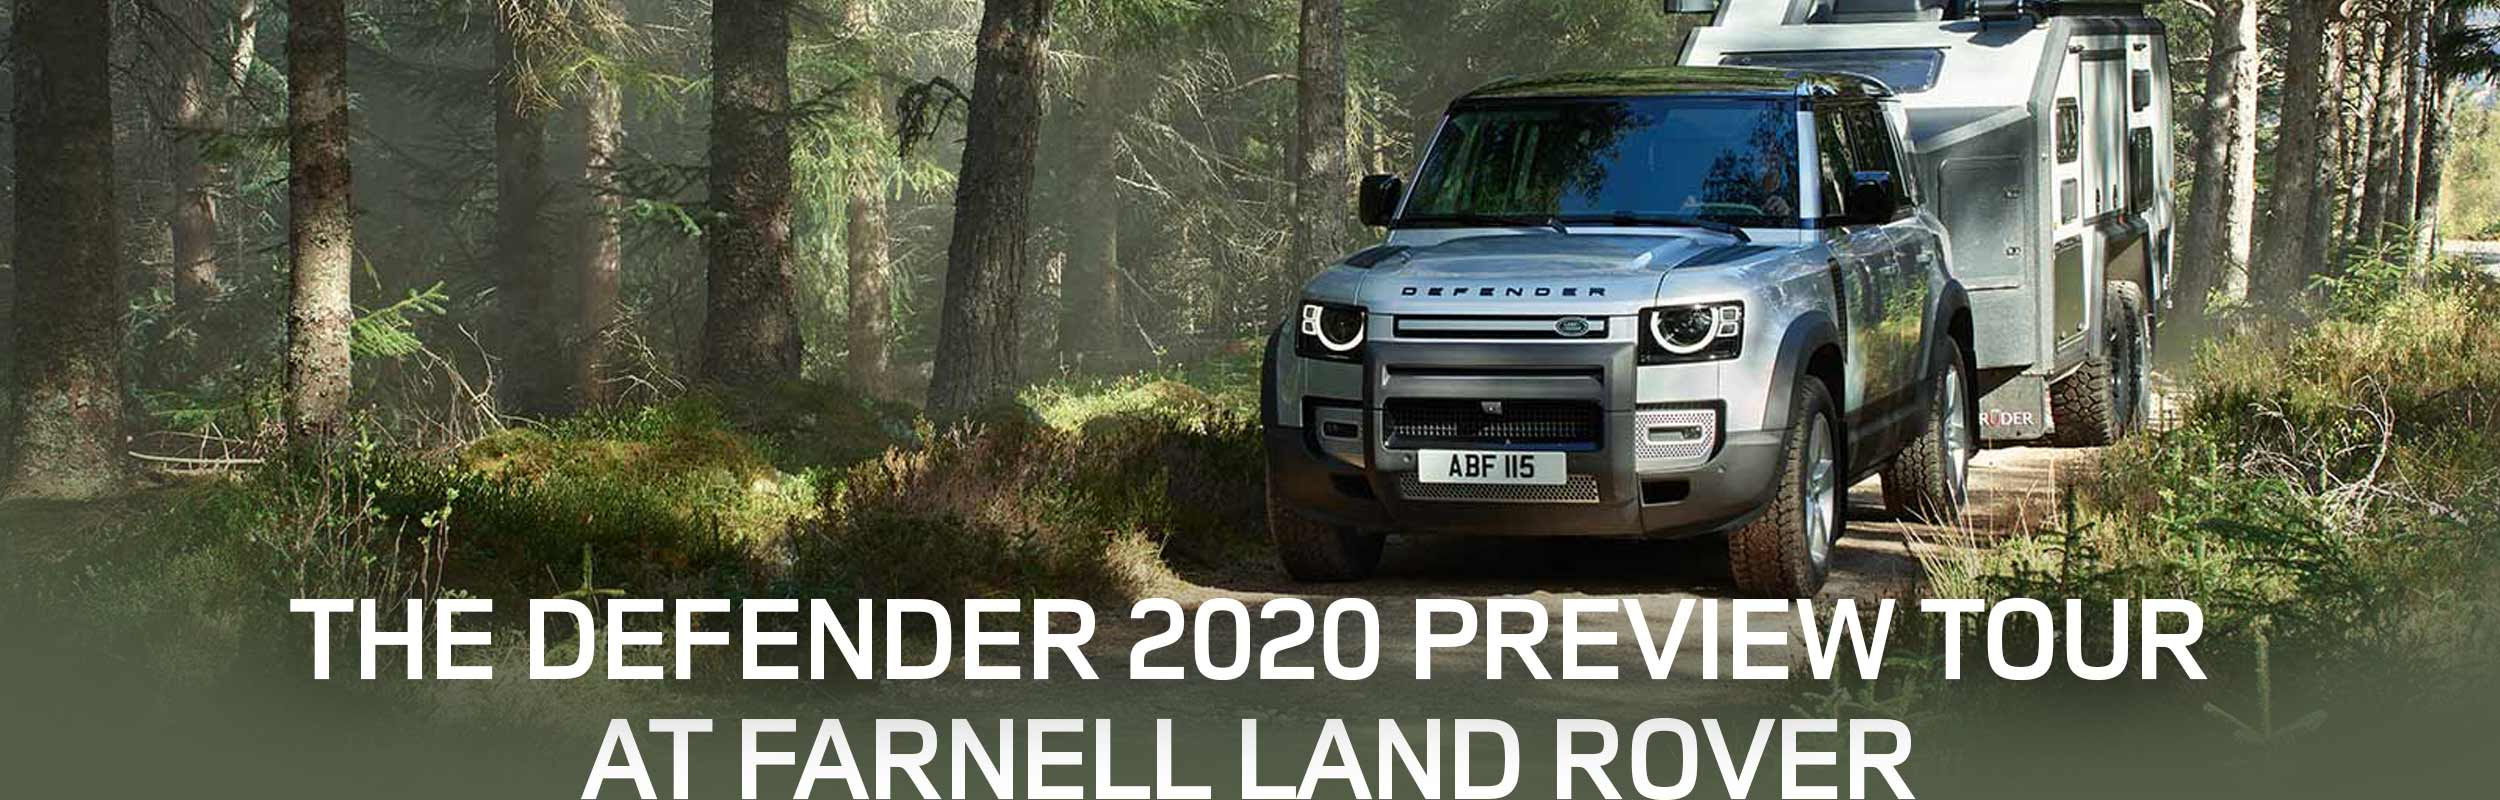 The Defender 2020 Preview Tour at Darnell Land Rover